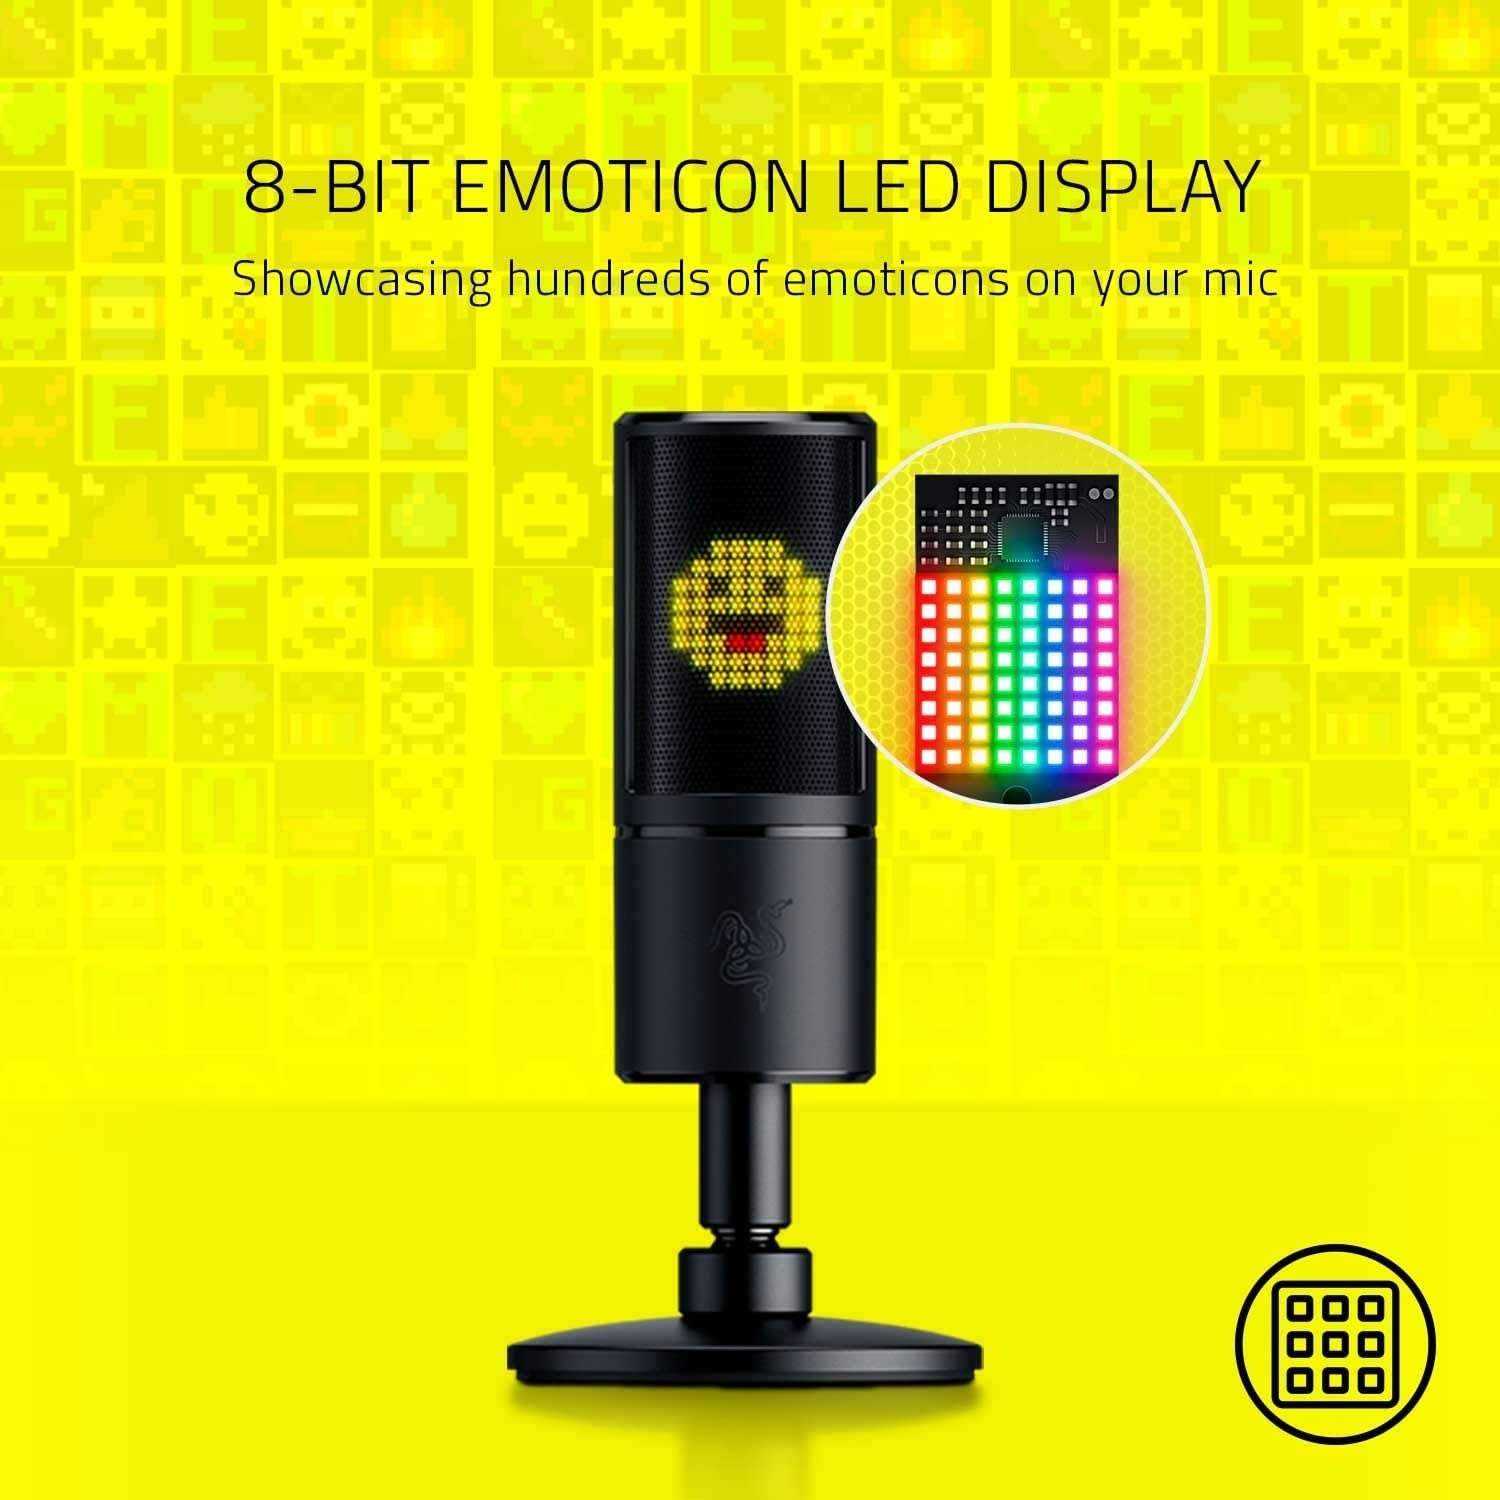 A black microphone with an LED display showing an emoji sticking its tongue out